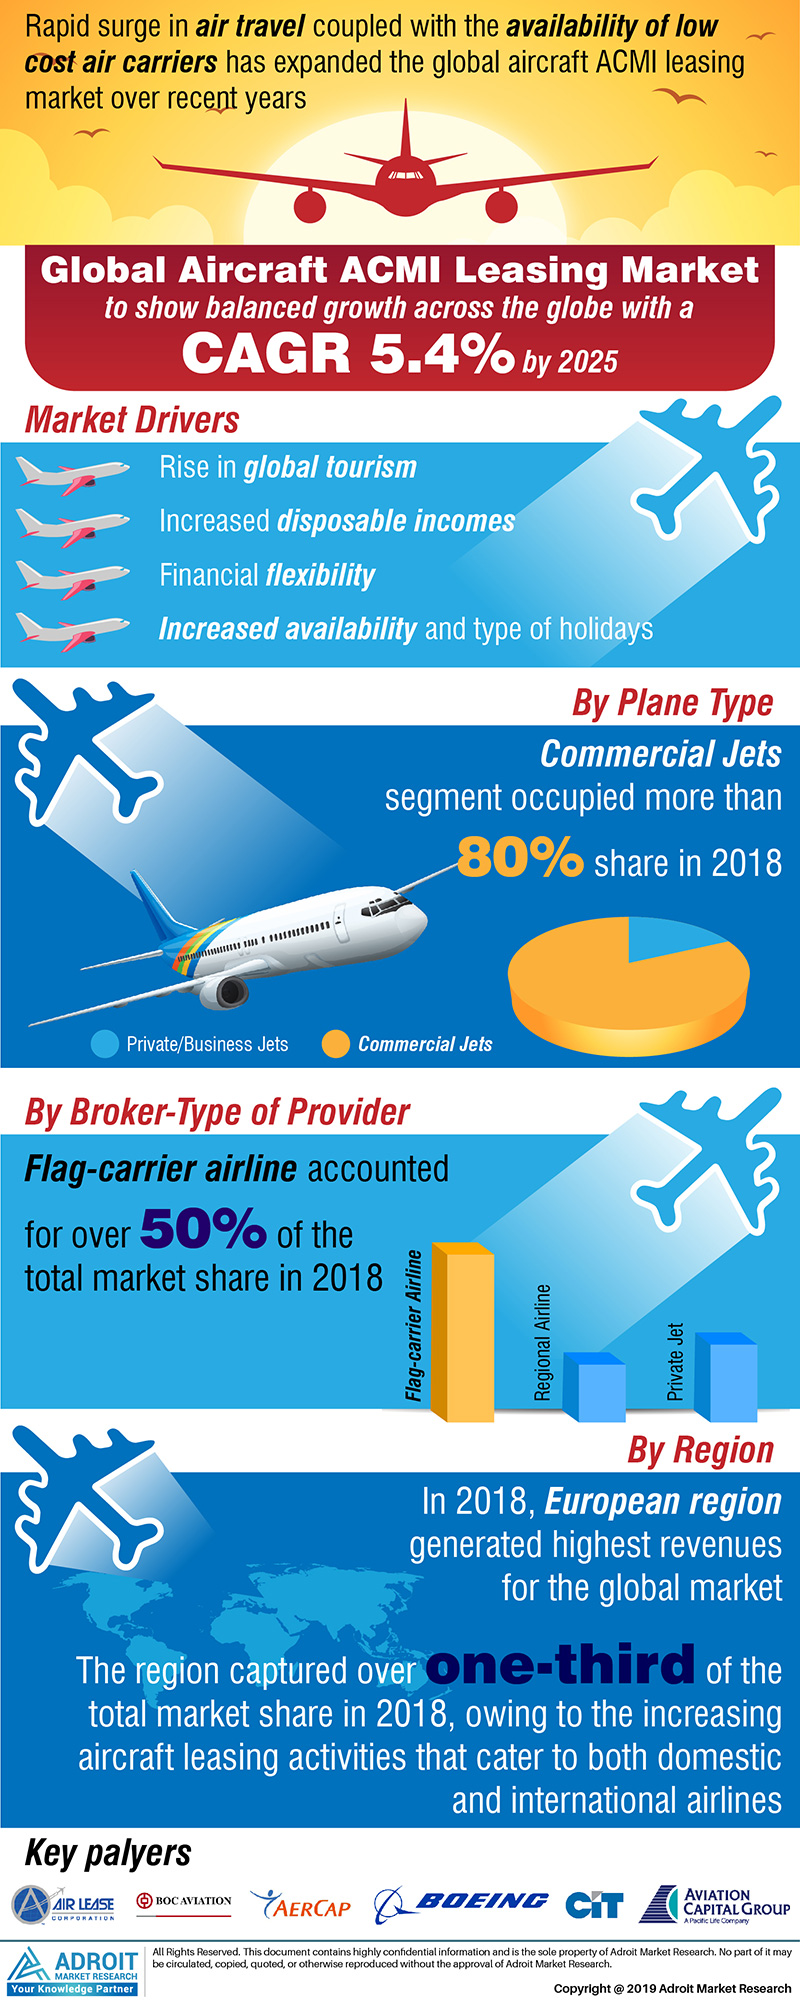 Global Aircraft ACMI Leasing Market Size 2017 By Type, Plane-Type, Body-Type, Lease Provider Type, Broker-Plane Type, Broker-Type Of Provider, Direct Plane-Type,  Direct -Type of Provider, Region and Forecast 2018 to 2025